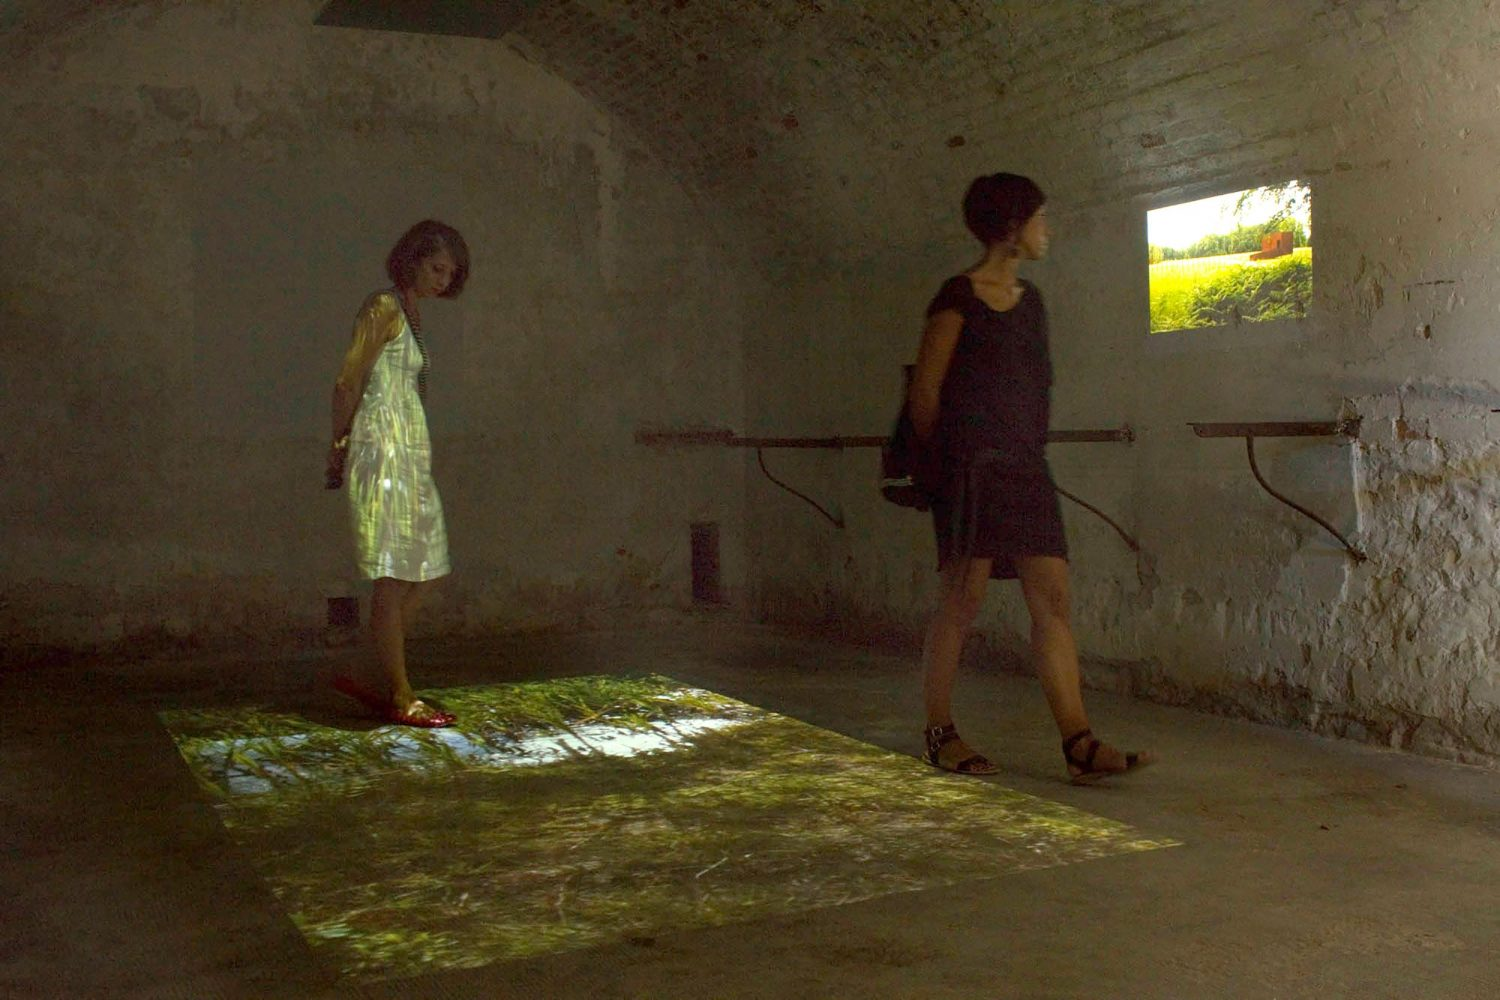 7 // In Room 7 (Walking on an Ancient Battlefield, Reading History on the Ground) different projections showed aspects of the archeological museum and park in Kalkriese in Germany. One film projected on the floor, showed the feet of the filmer walking on the natural and re-designed ground.